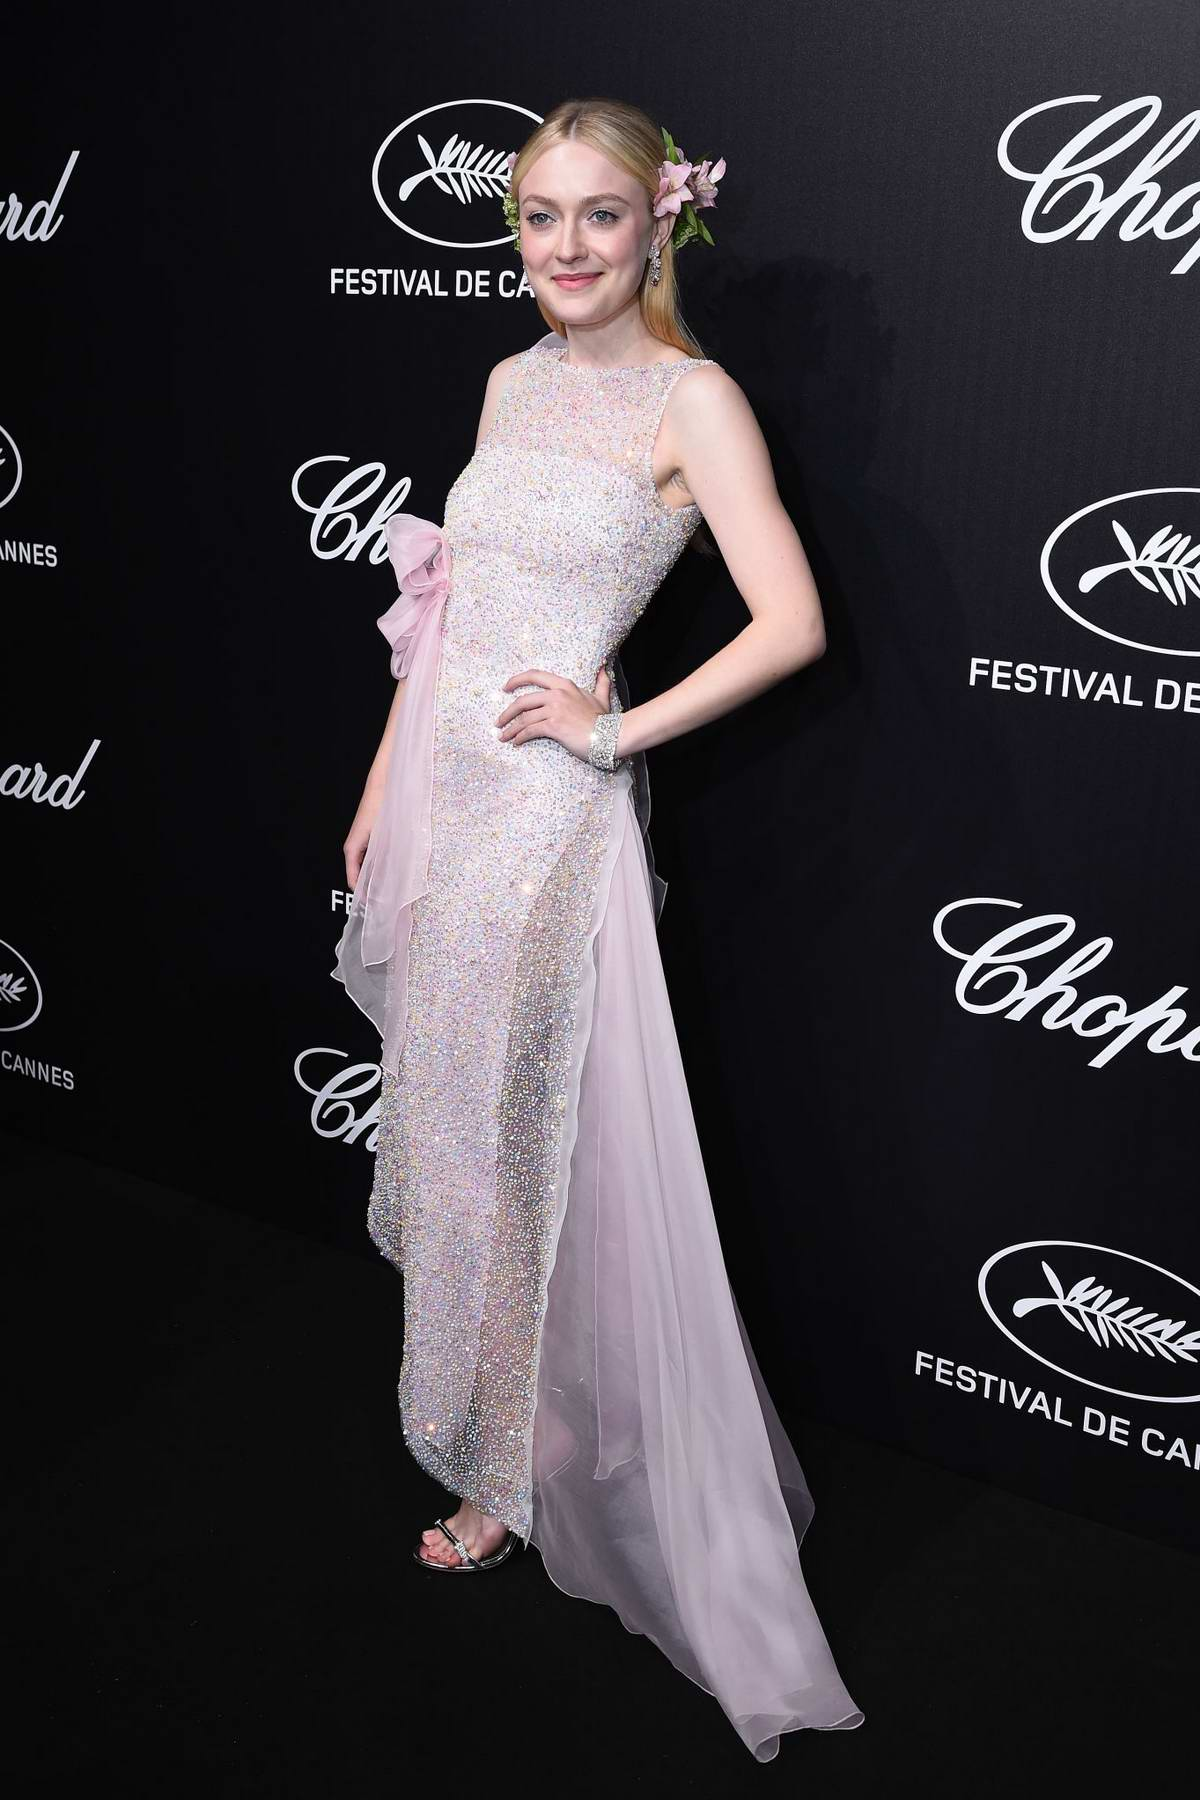 Dakota Fanning attends the official Trophee Chopard Dinner Photocall during the 72nd annual Cannes Film Festival in Cannes, France